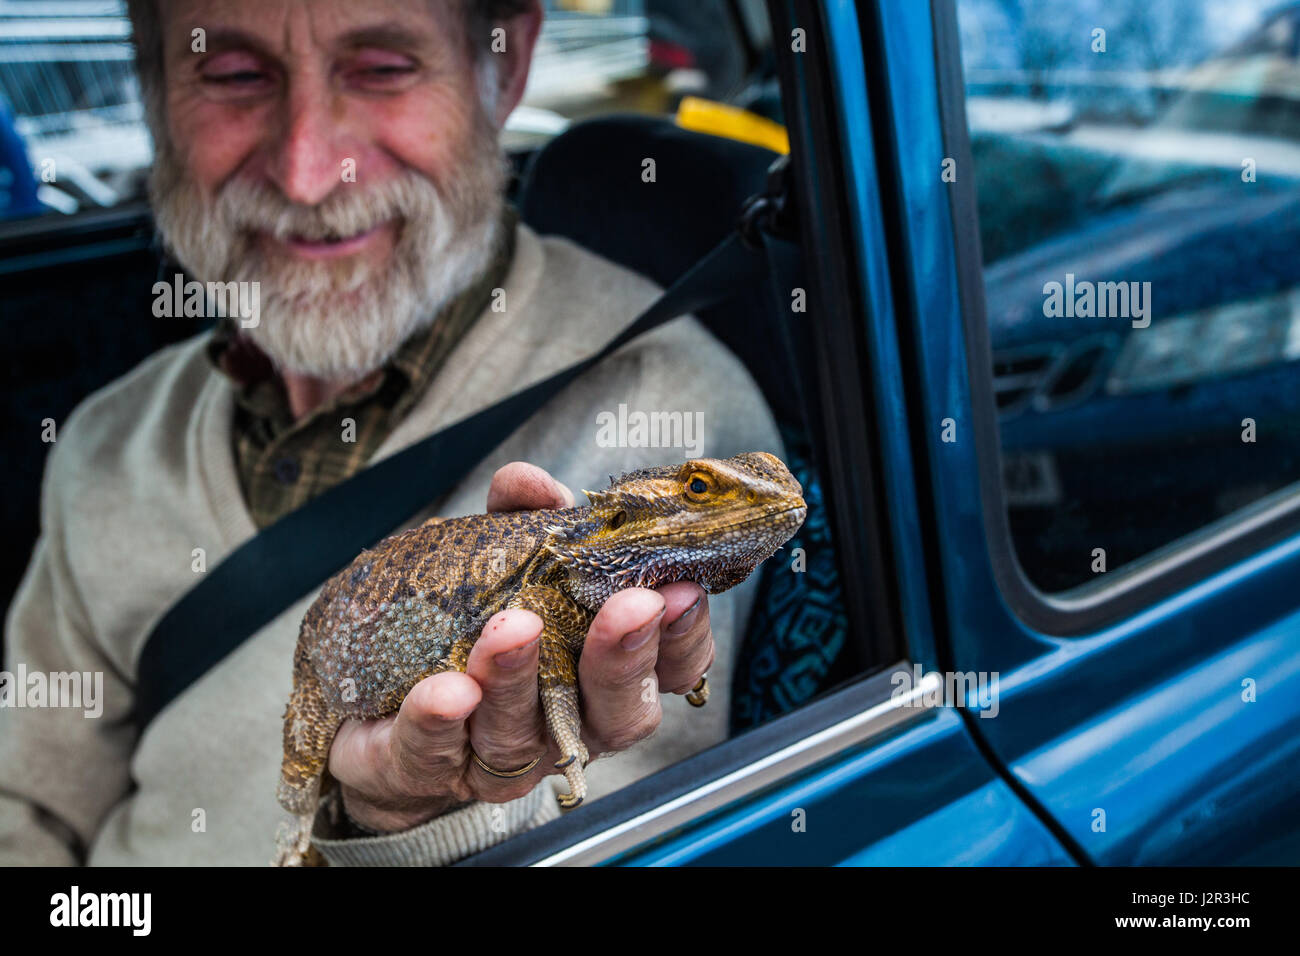 A man sat in a car holds a bearded dragon lizard in his hand - Stock Image